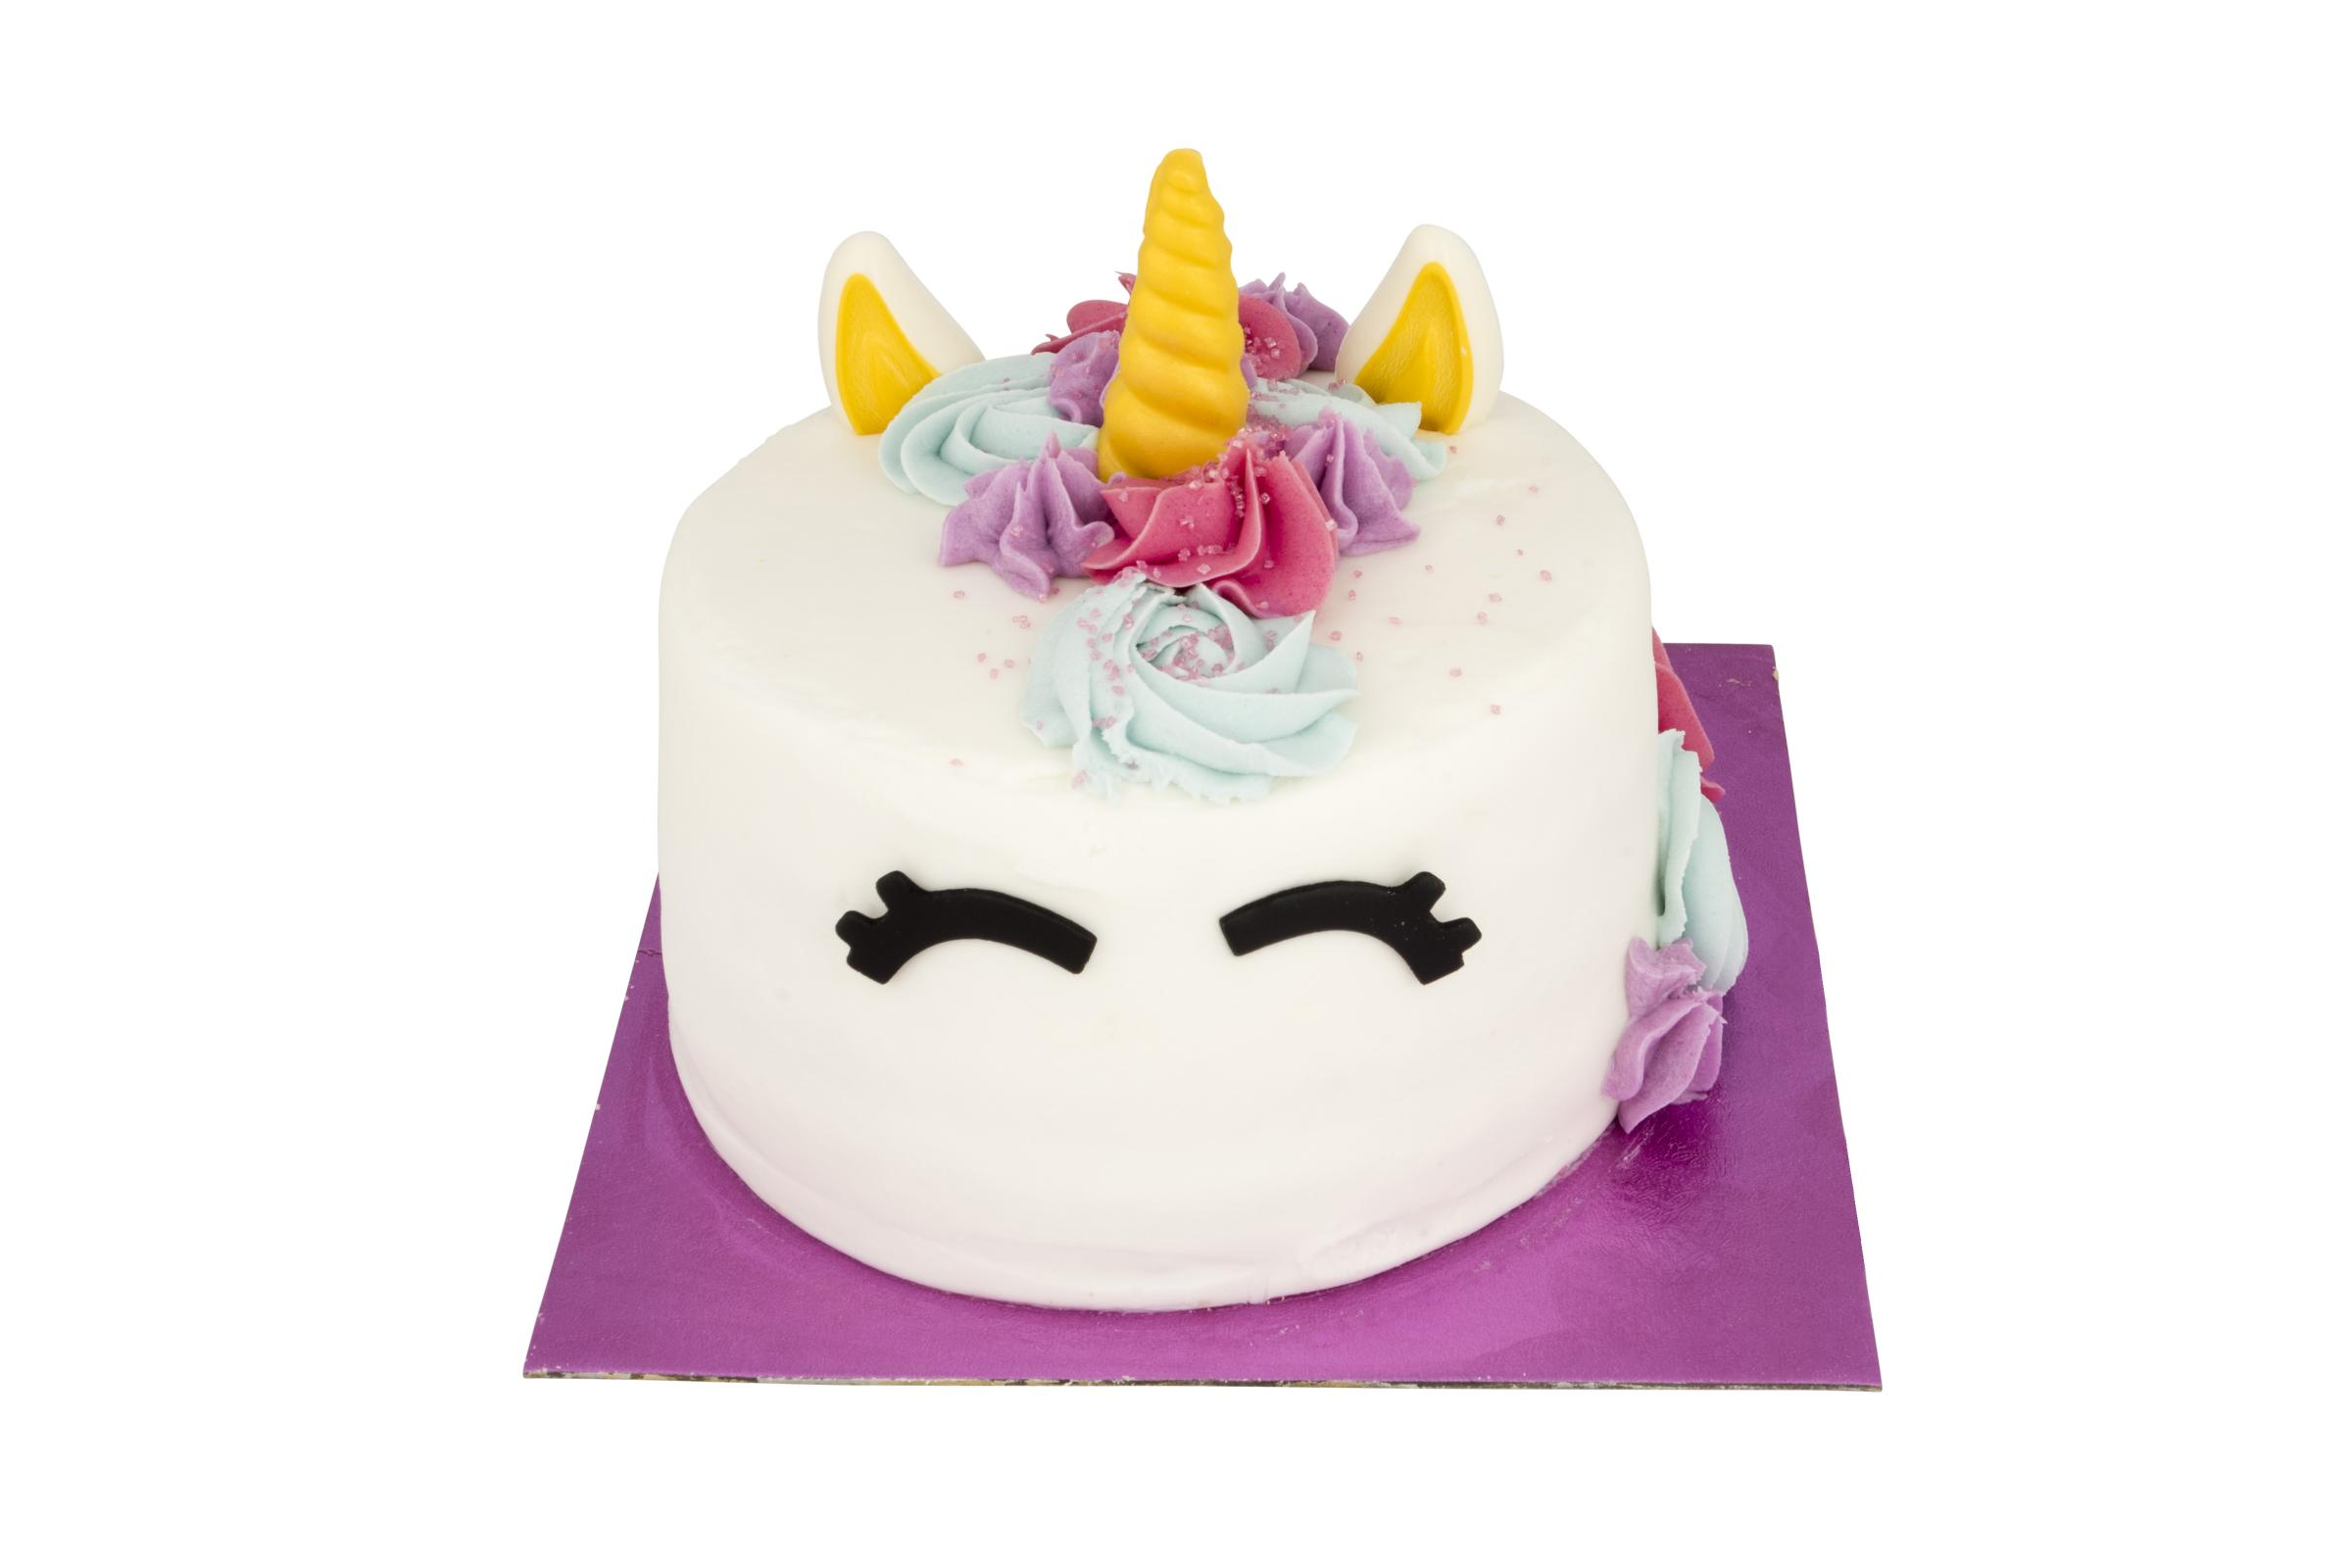 Celebration Birthday Cakes Asda ~ Asda launches unicorn cake that looks magical and costs £ news